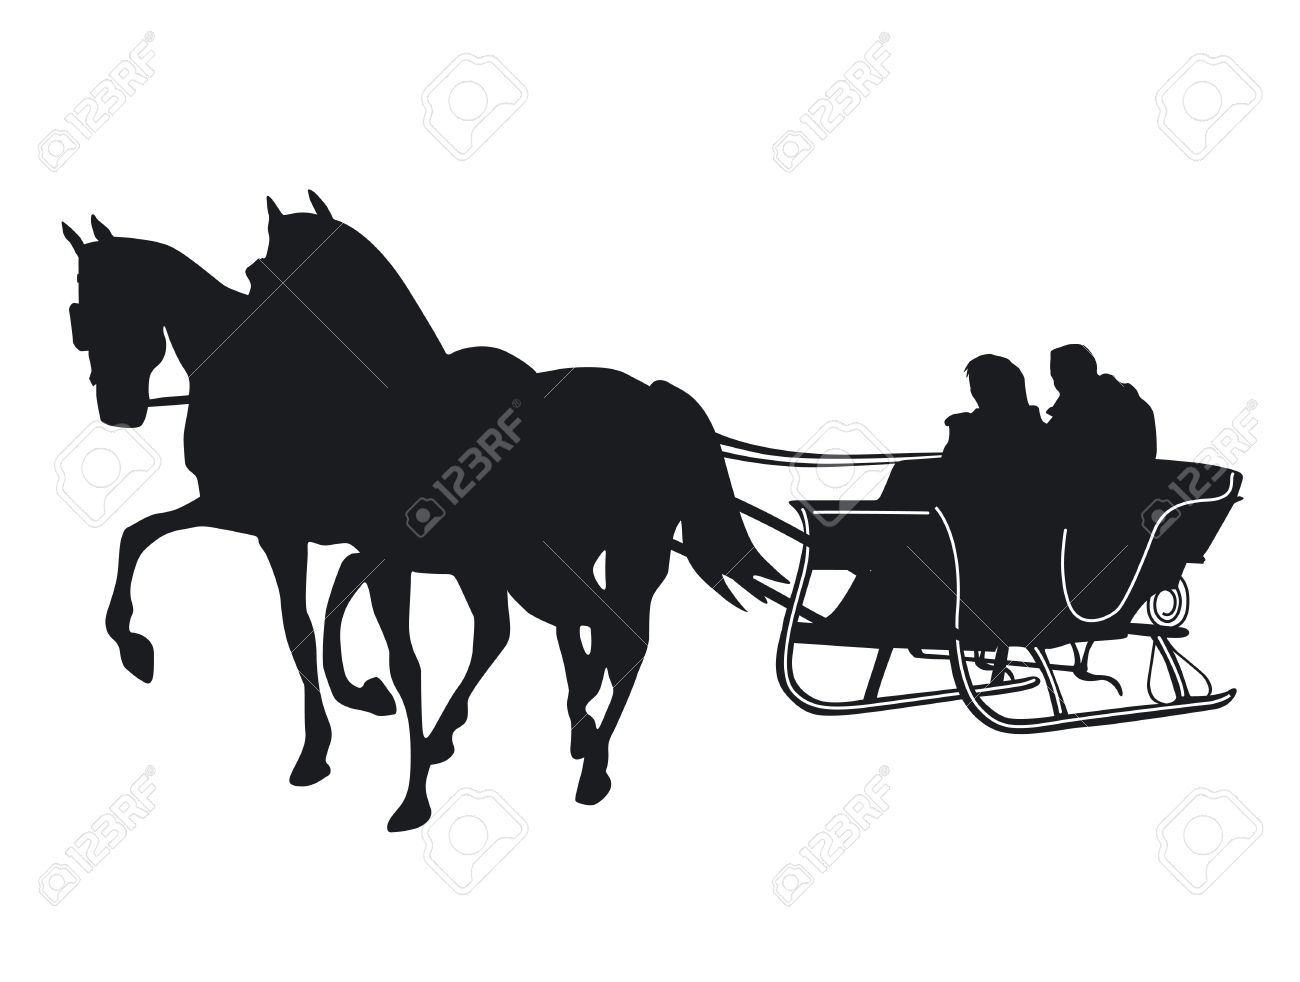 403 Horse Sleigh Stock Vector Illustration And Royalty Free Horse.